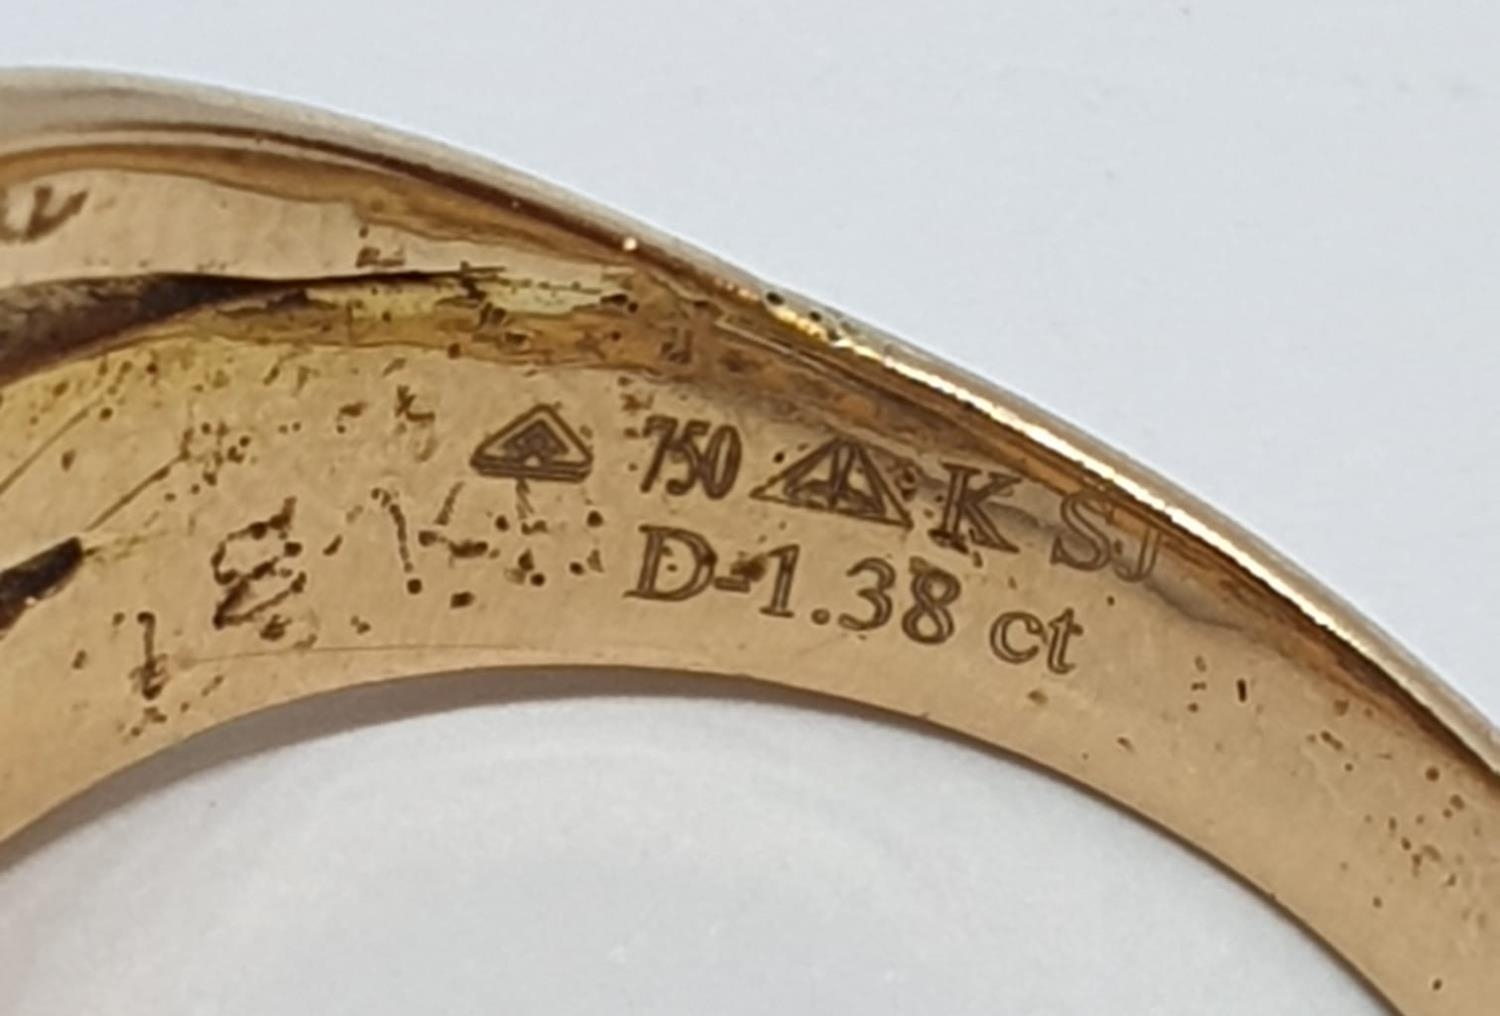 18ct Yellow gold diamond set fancy three row twist band ring. Weight 8.5g, Approx. 0.60ct of - Image 12 of 14